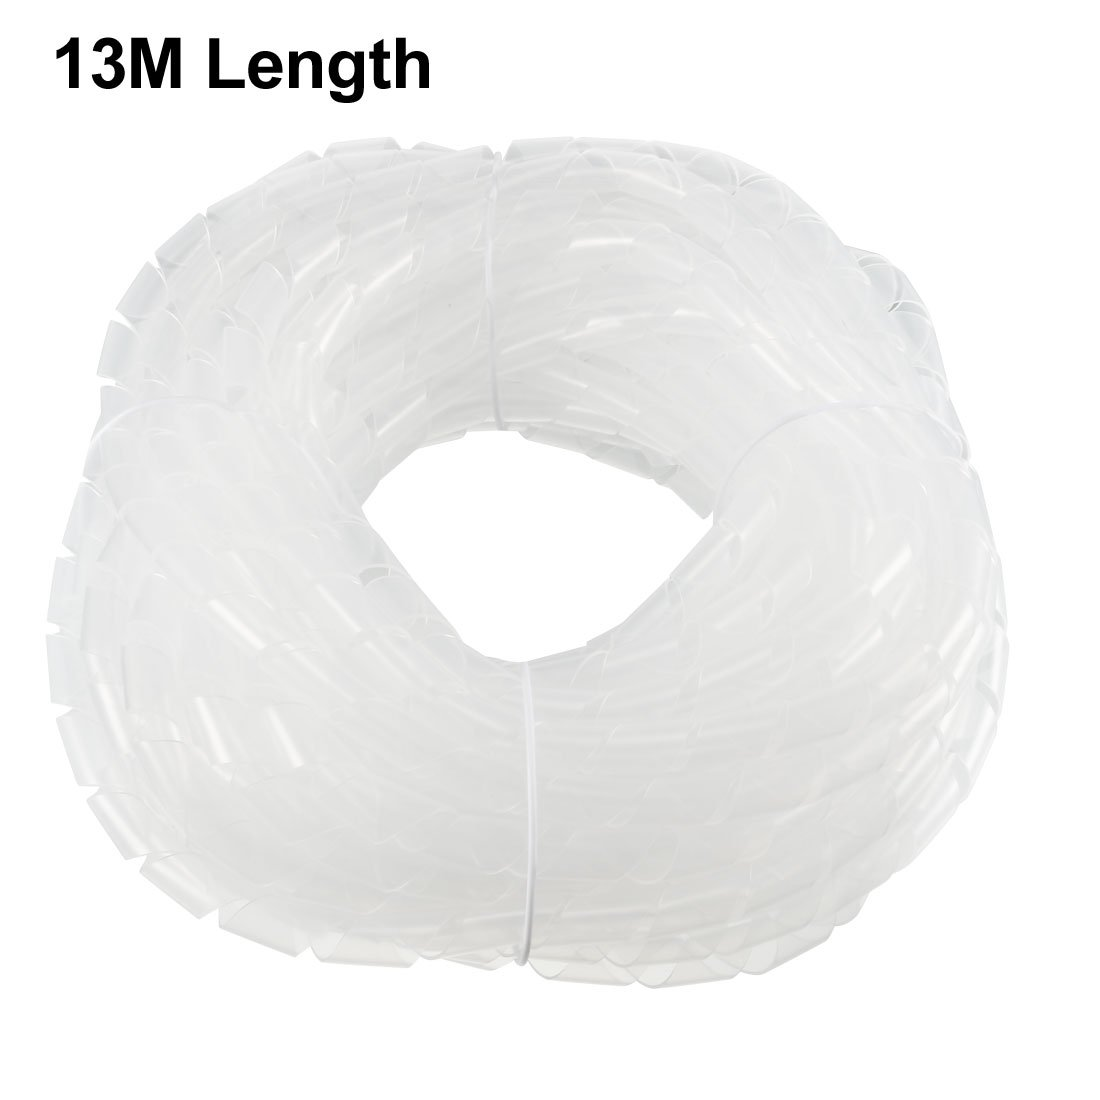 Amazon.com: uxcell Flexible Spiral Tube Wrap Cable Wire Organizer ...